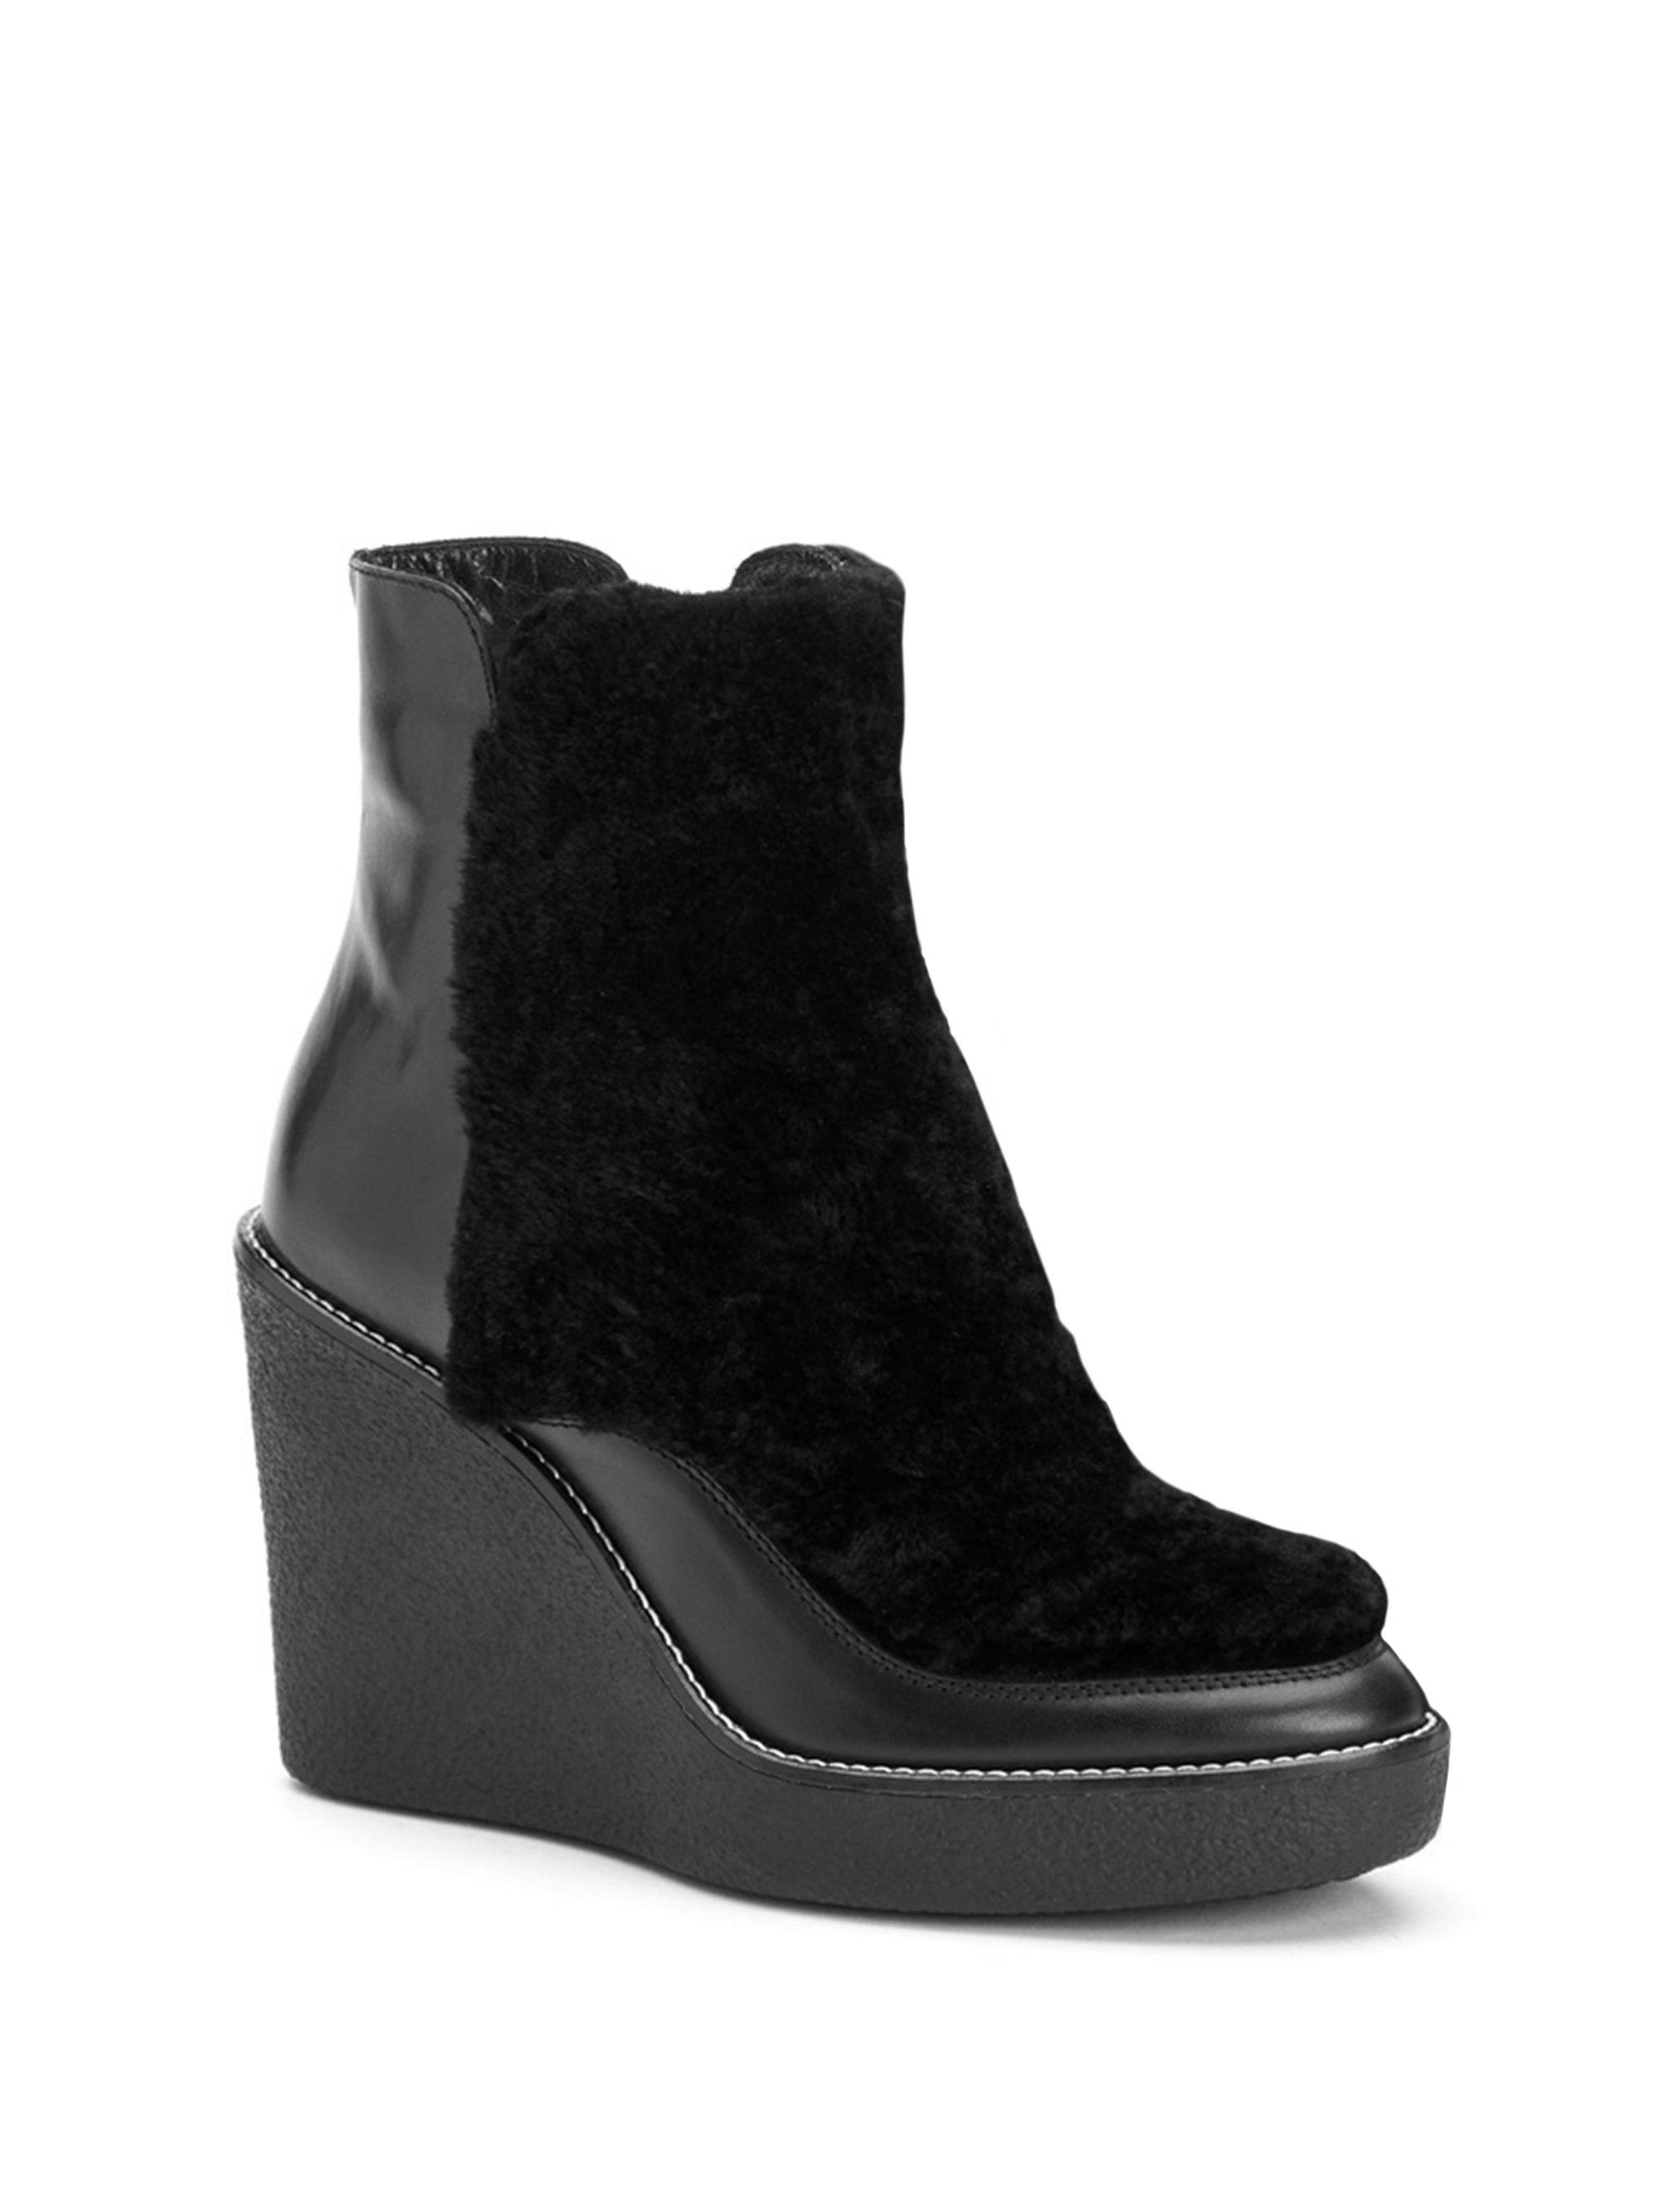 Aquatalia Violett Shearling & Leather Wedge Booties fZumiGd